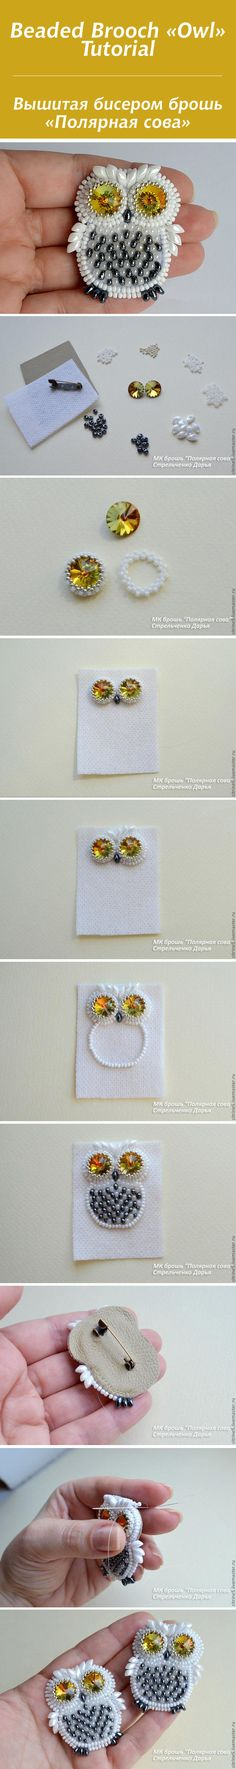 "Tutorial de broche de coruja feito com miçangas, cristais e pedrarias. www.beadshop.com.br?utm_source=pinterest&utm_medium=pint&partner=pin13 Вышитая бисером брошь ""Полярная сова"" / Beaded Brooch ""Owl"" Tutorial #bead #tutorial"